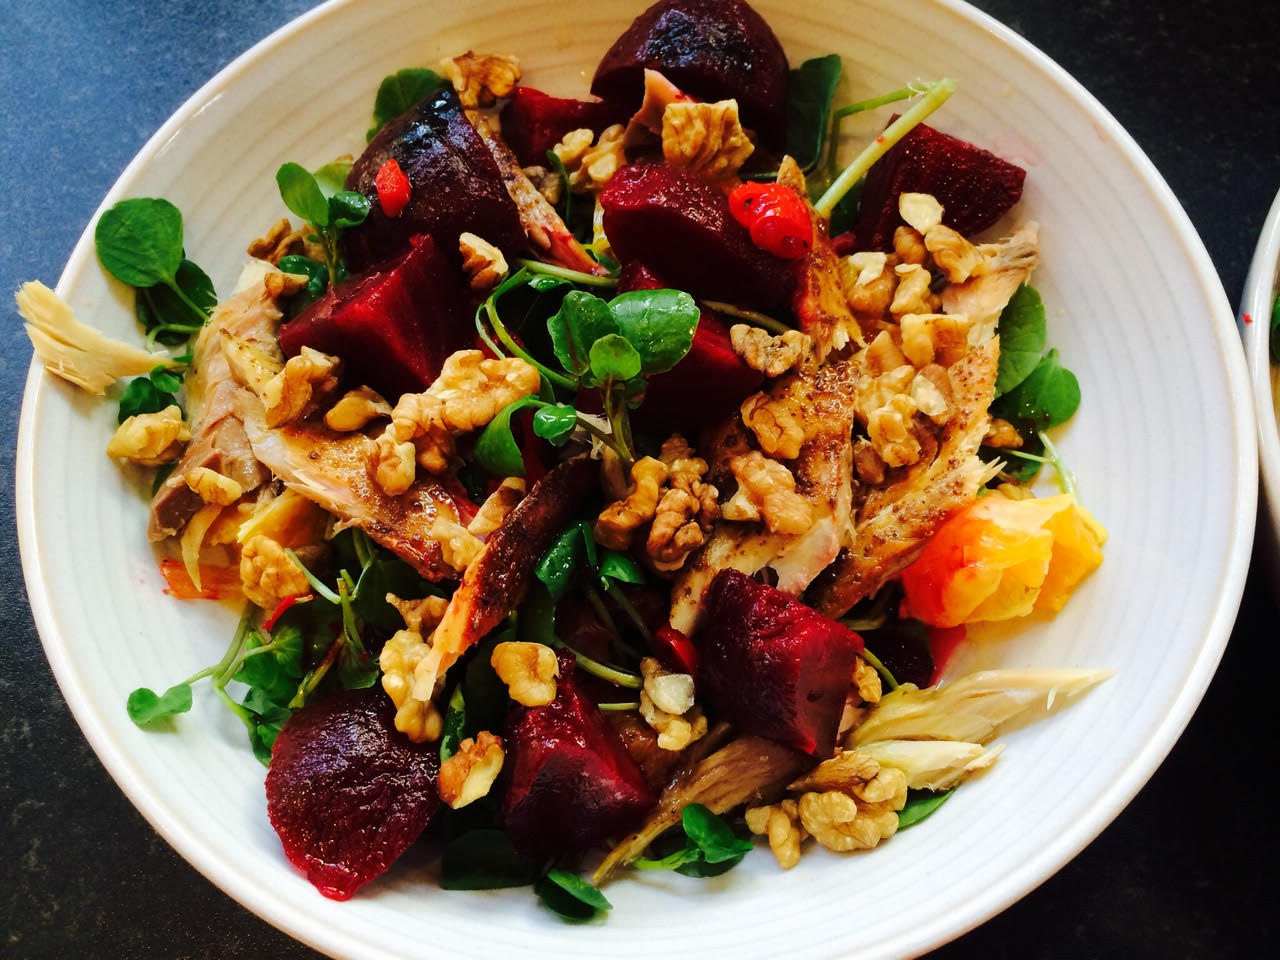 Mackerel, Beetroot and Orange Salad